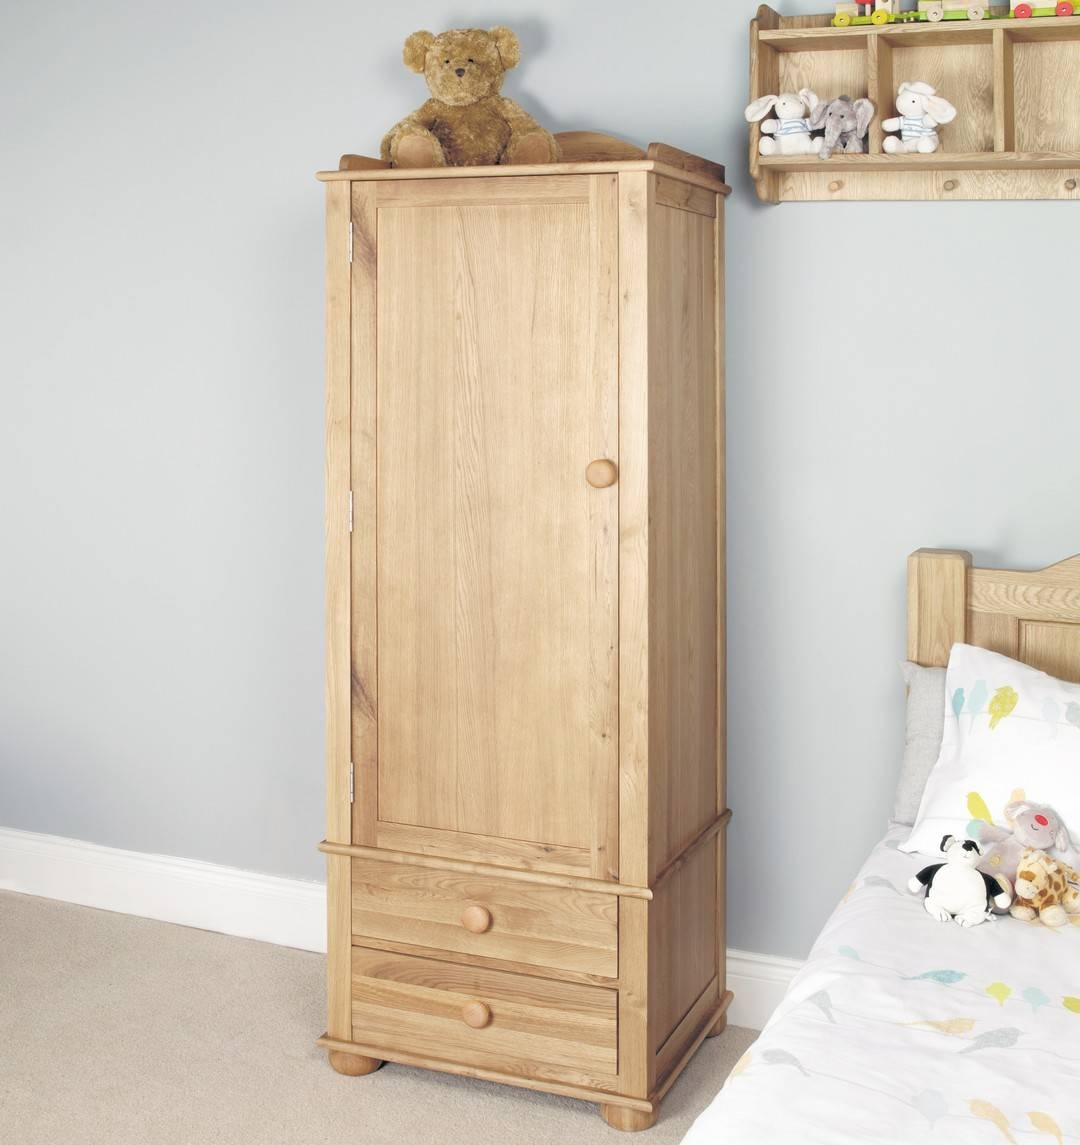 Solid Oak Childrens Single Wardrobe with regard to Single Oak Wardrobes With Drawers (Image 15 of 15)